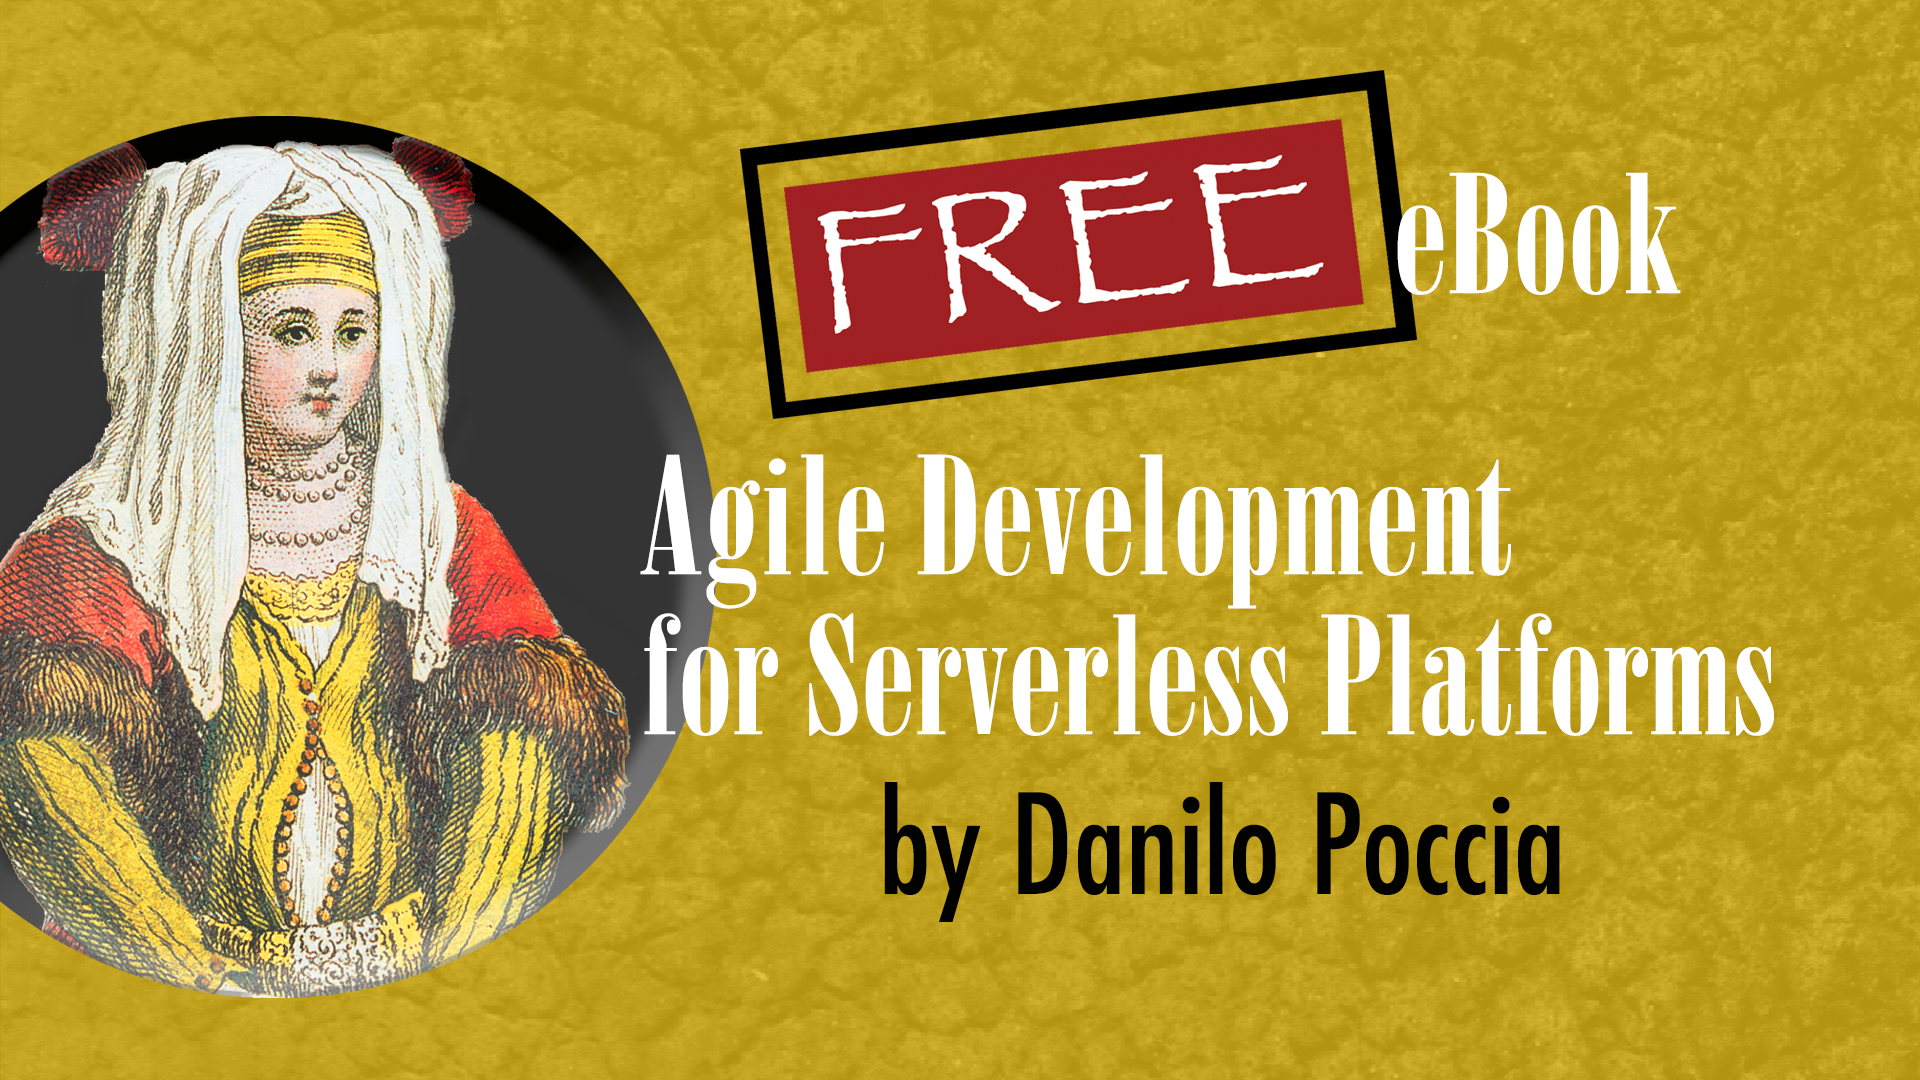 agile-development-for-serverless-platforms